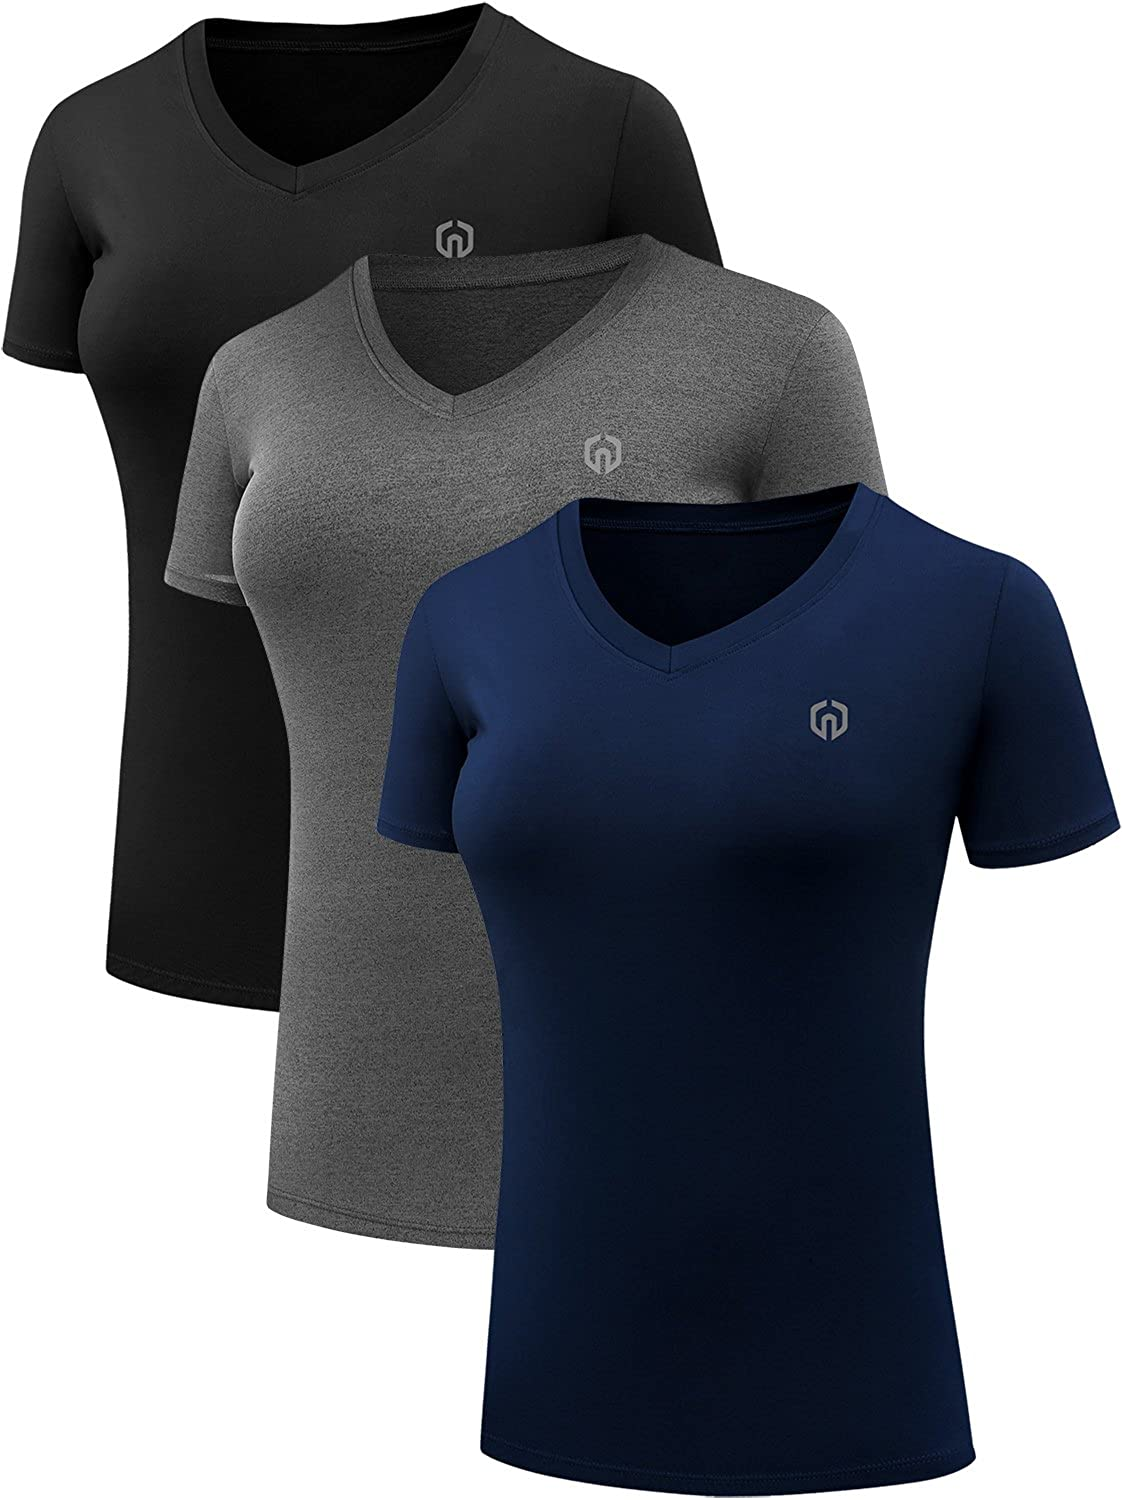 Neleus Women's 3 Online Sale special price limited product Pack Athletic Workout Compression Shirt